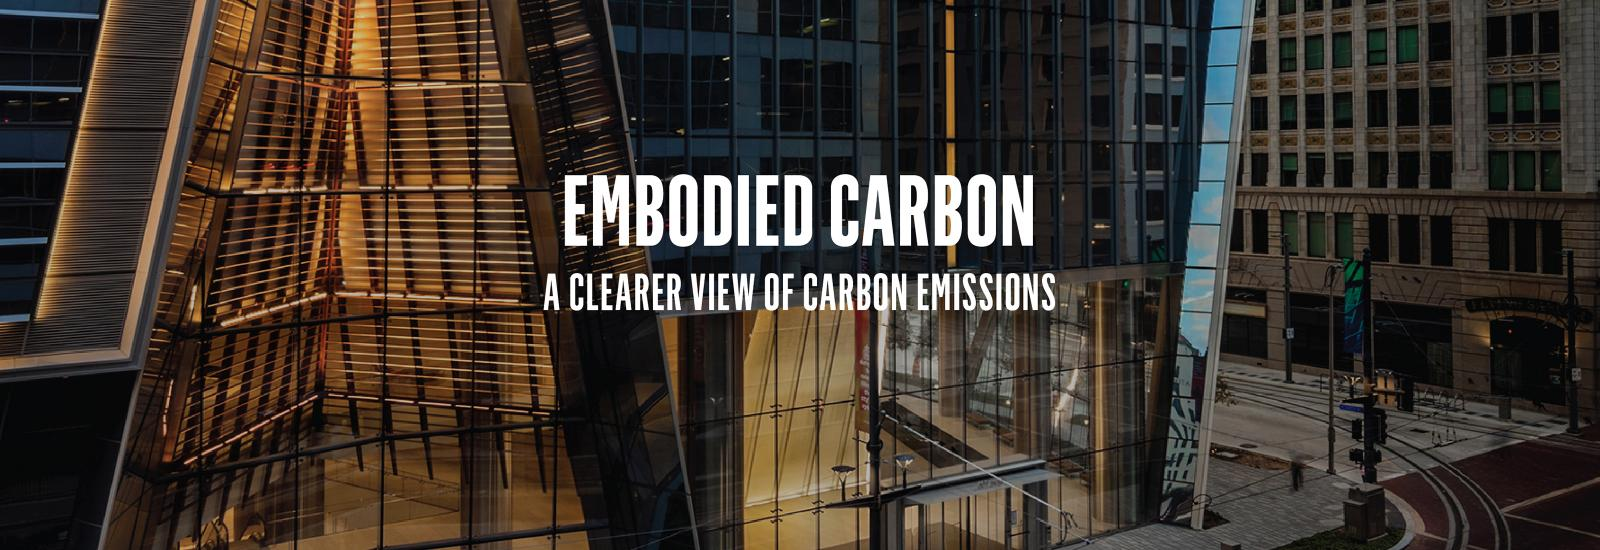 Embodied Carbon Report